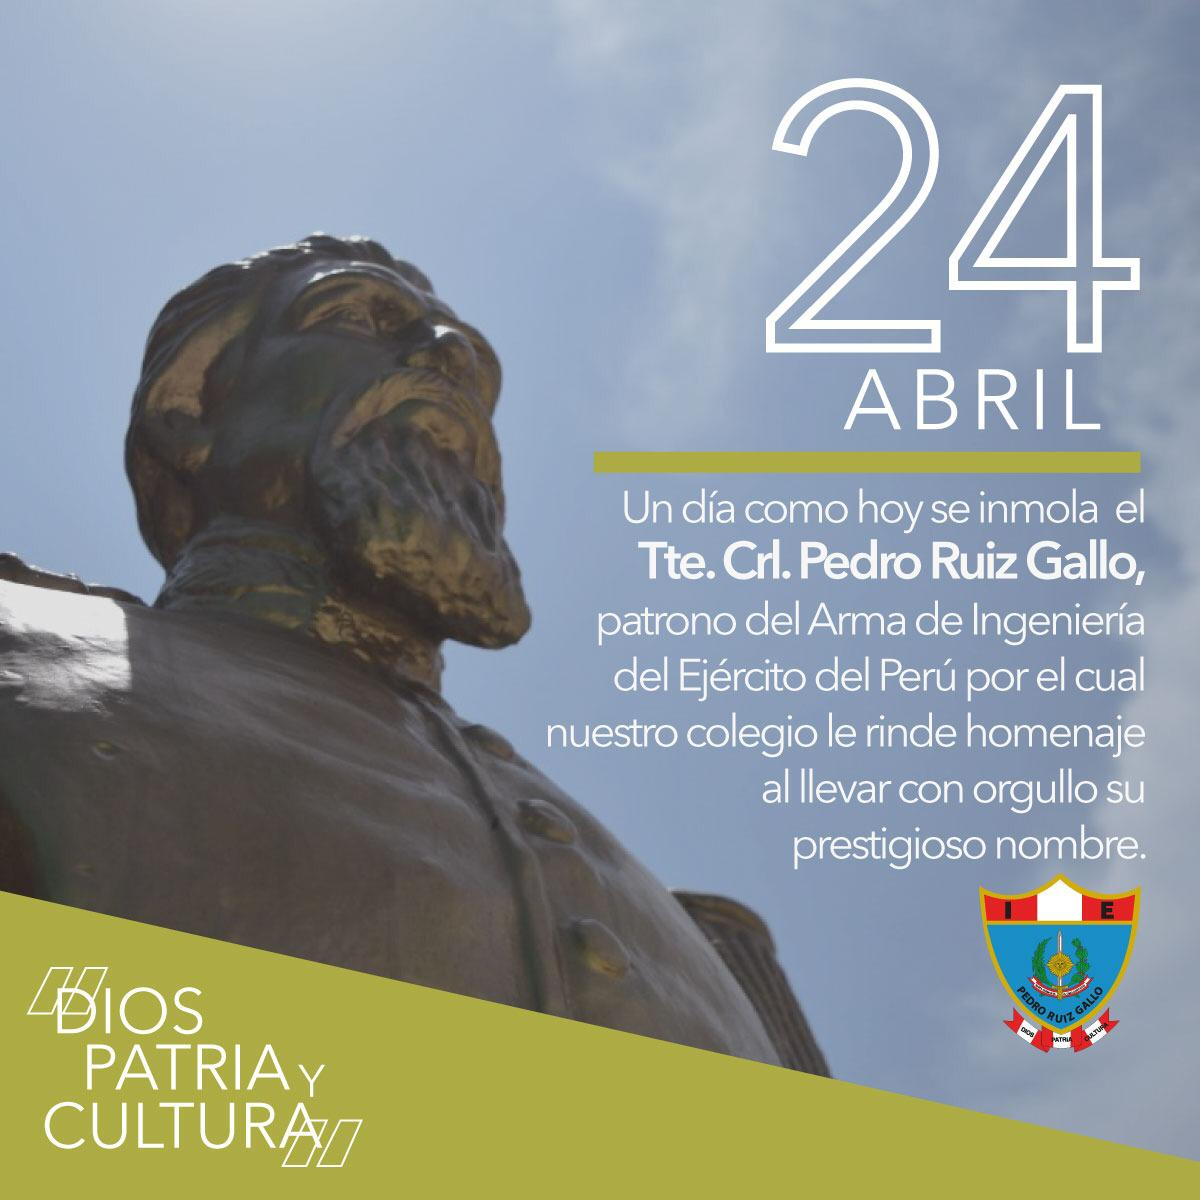 Pedro Ruiz Gallo